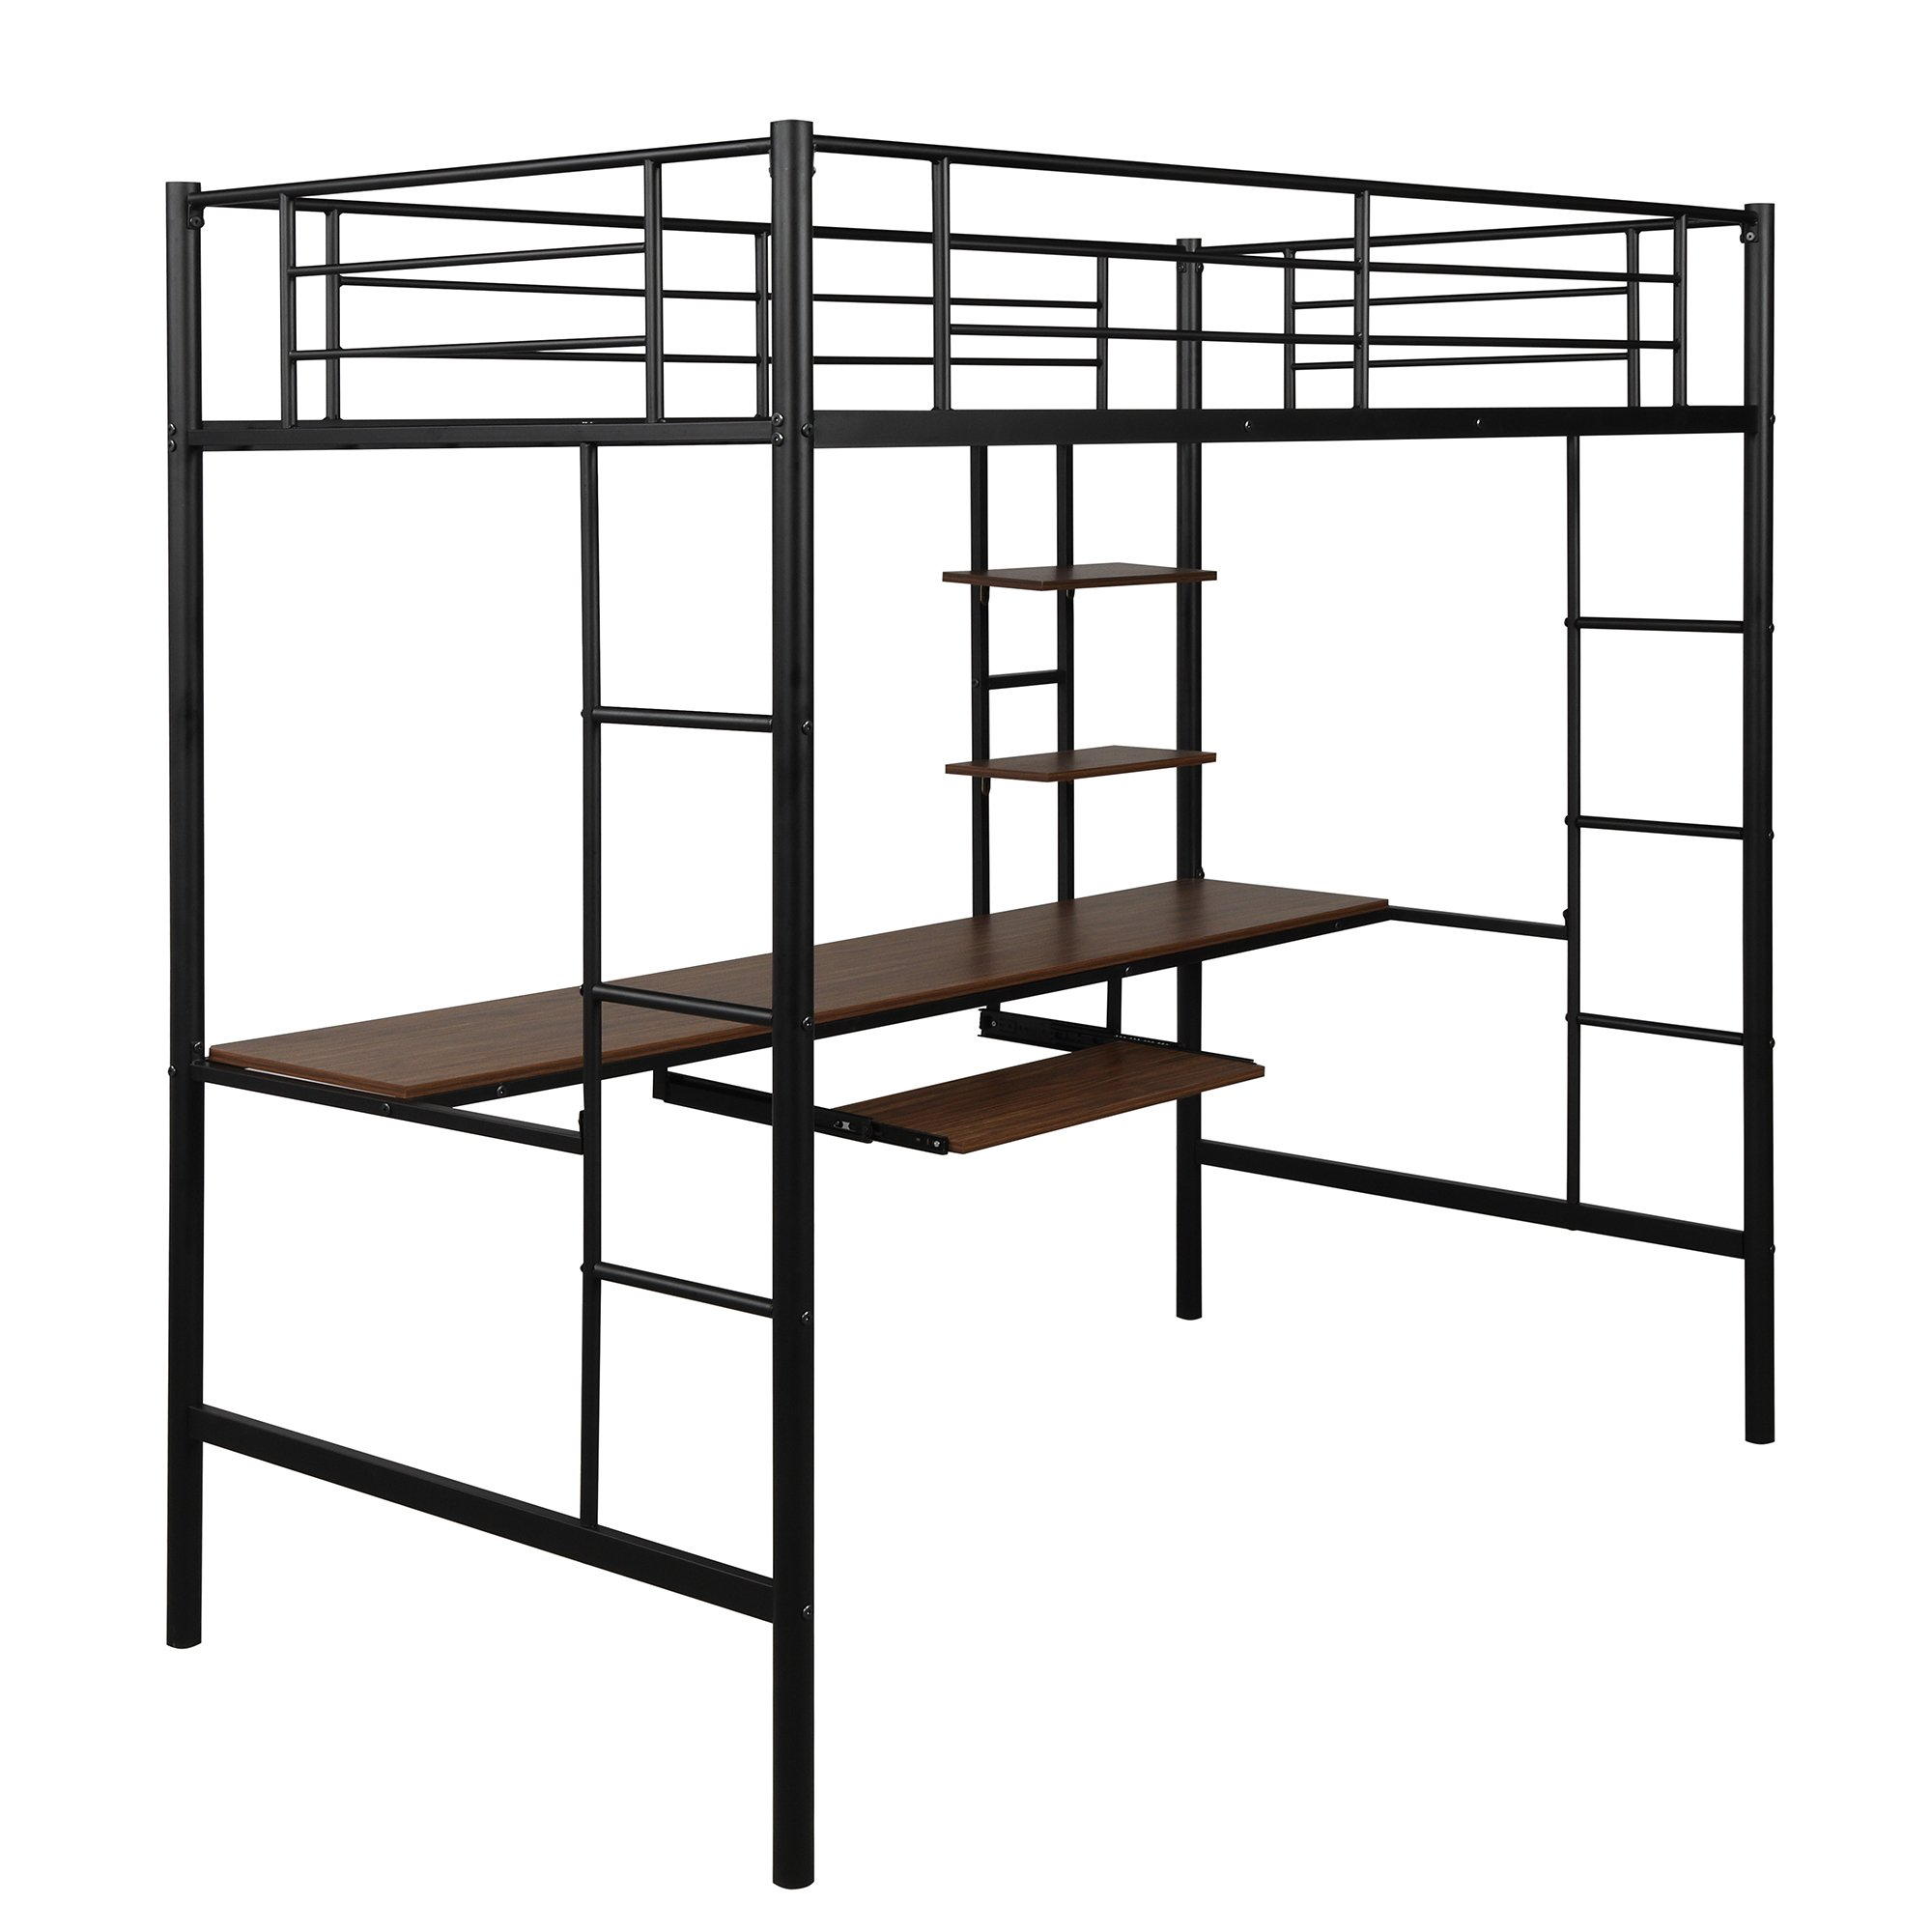 Loft Bed With Dsek And Shelf Space Saving Design